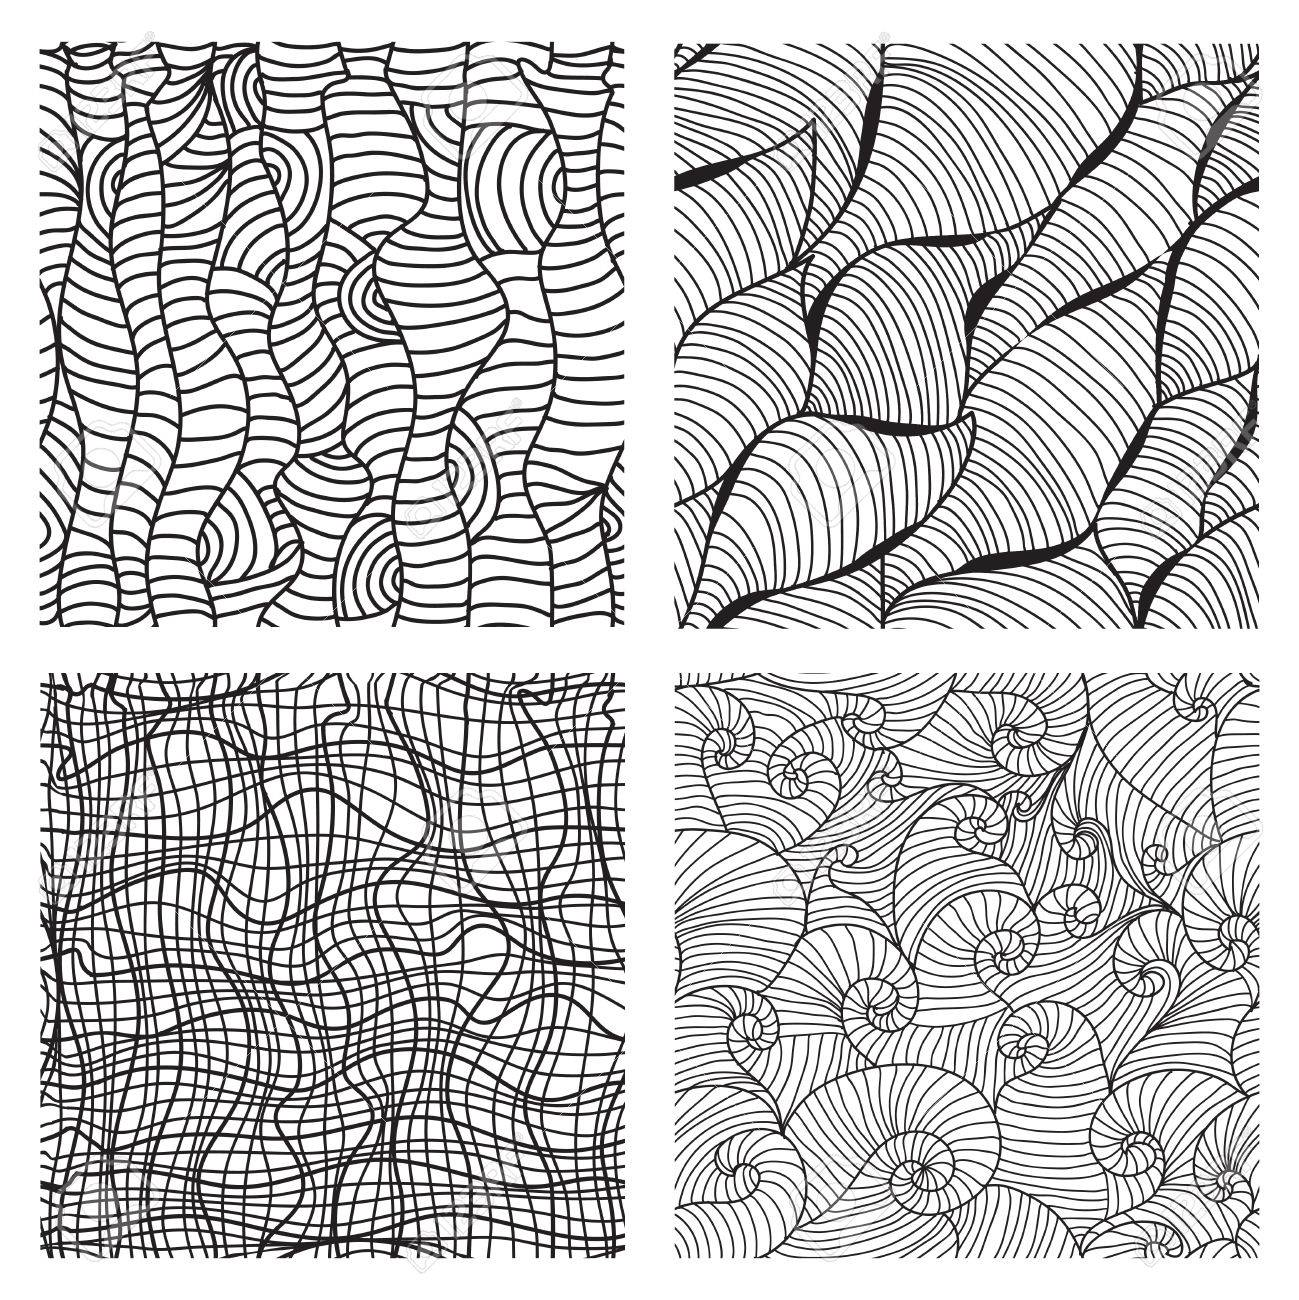 1299x1300 Set Of 4 Elegant Seamless Patterns With Decorative Waves, Wood